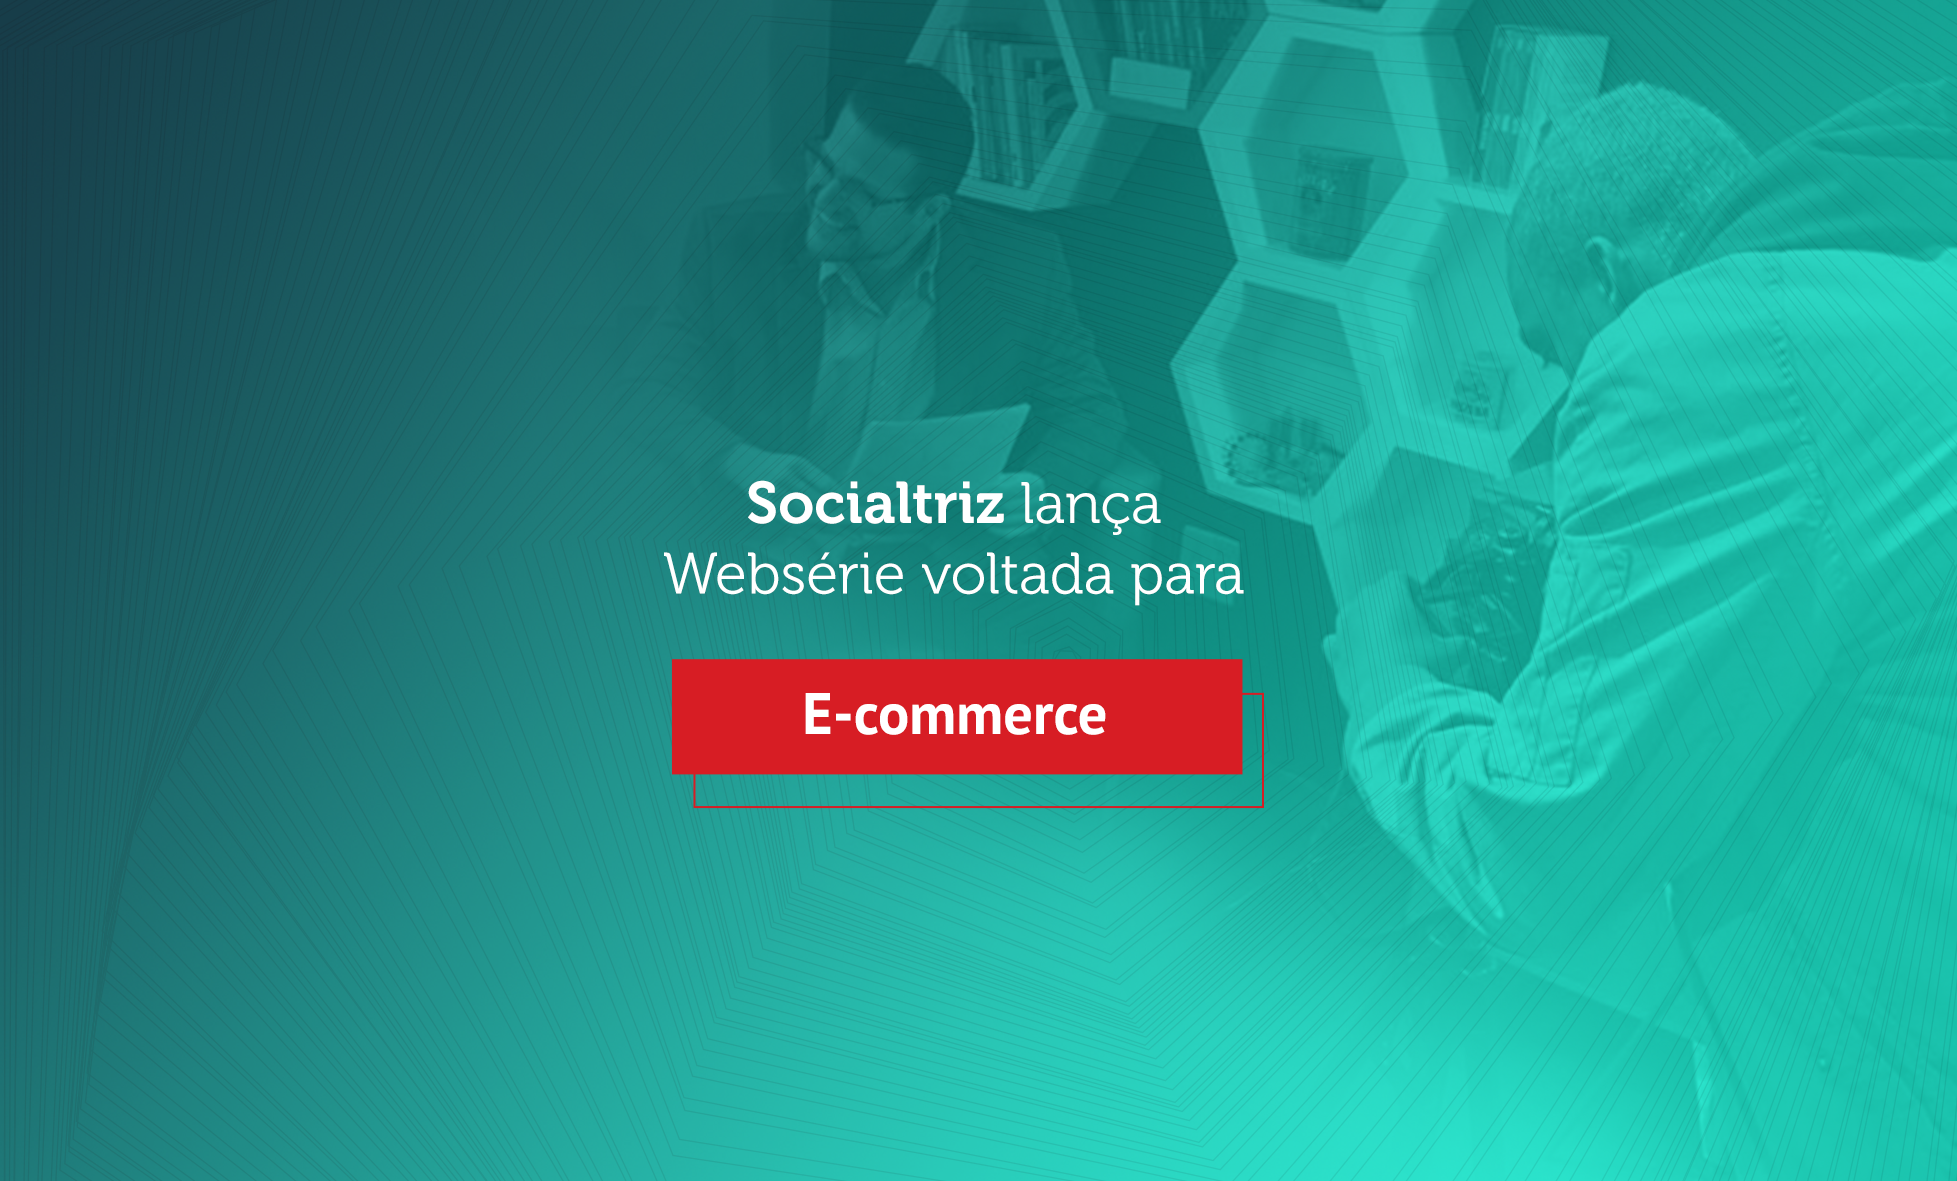 SOCIALTRIZ_blog-webserie-ecommerce